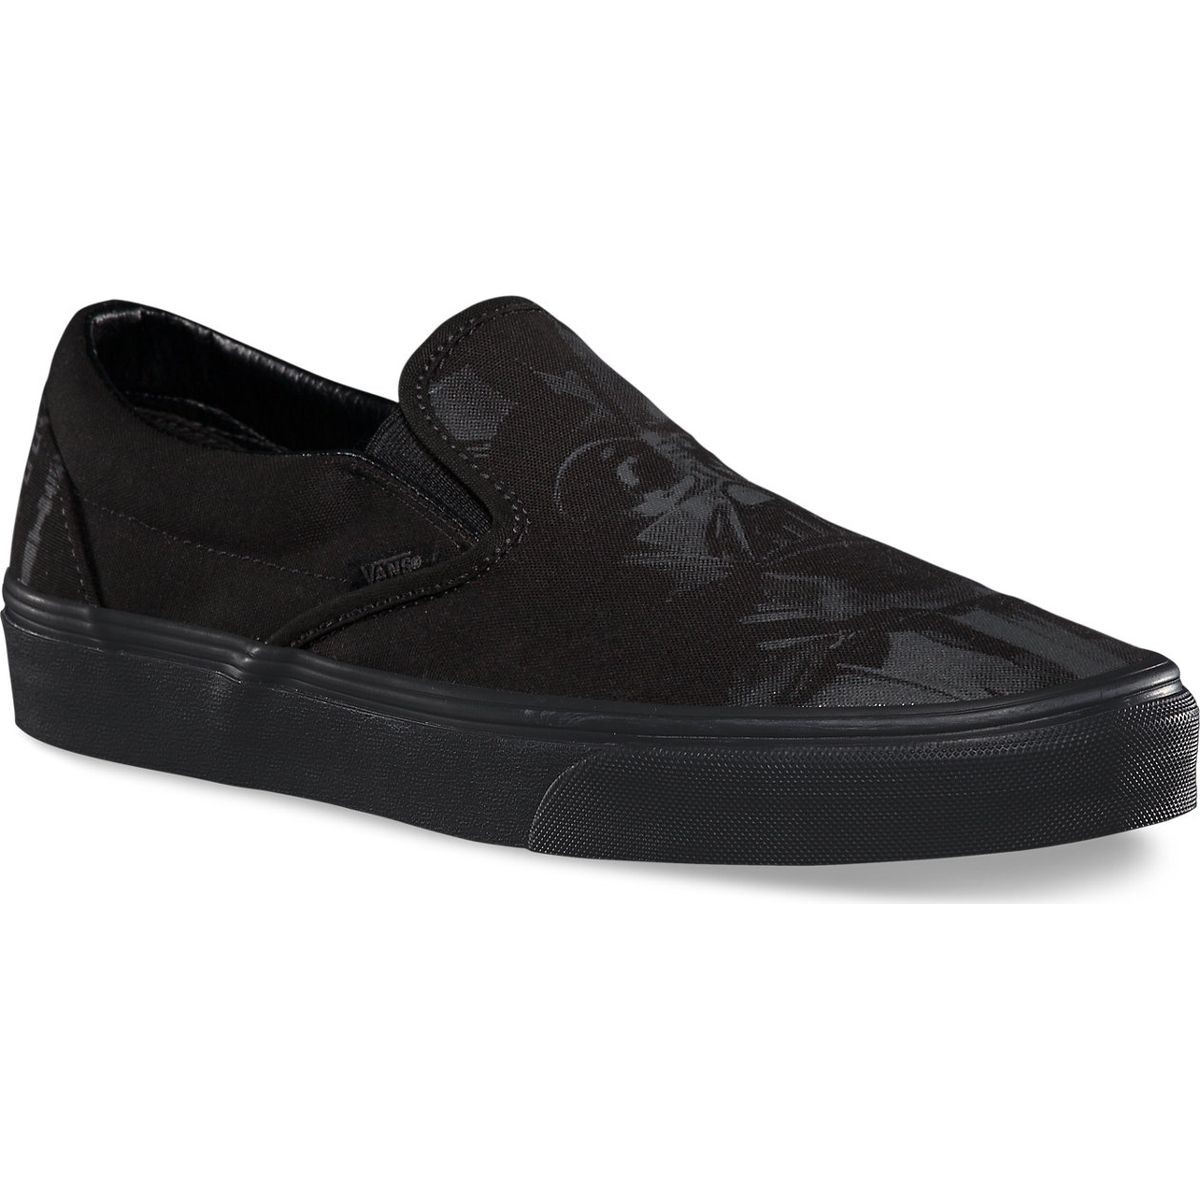 face01e0f1 Vans Star Wars Classic Slip-On Shoes - Dark Side Darth Vader - 8.0